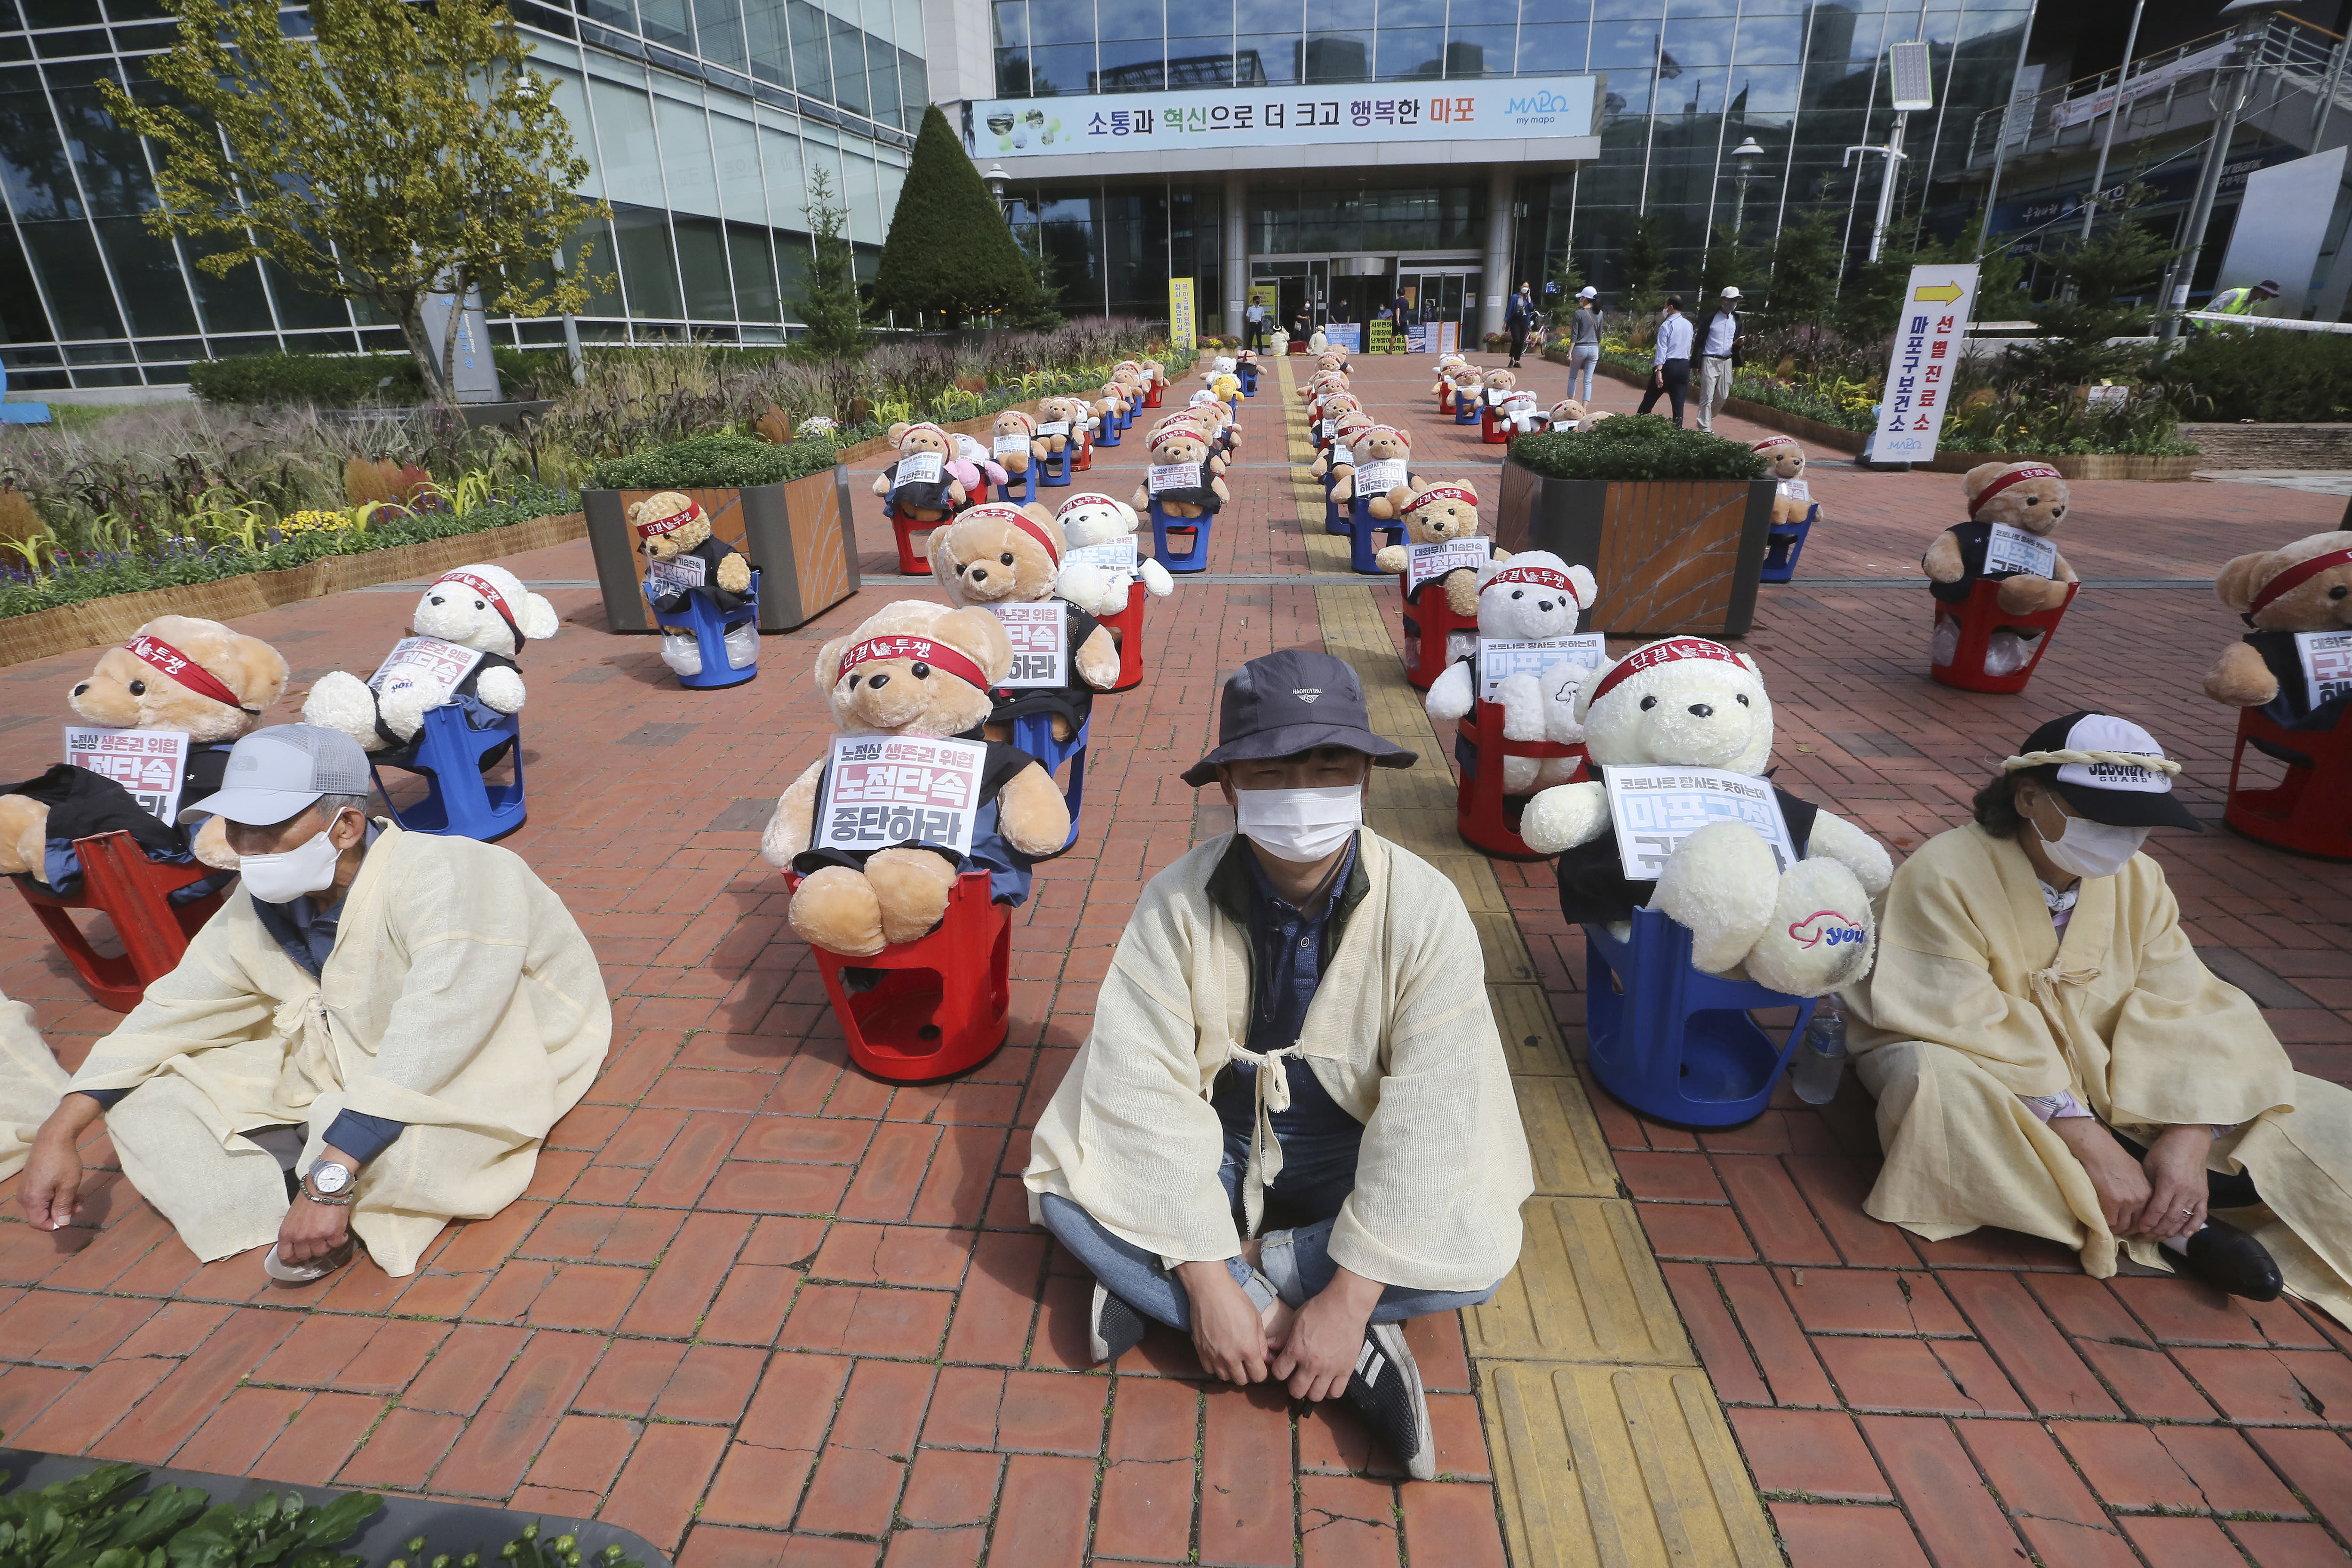 """Street vendors sit to protest against a crackdown on illegal street vendors, in front of the Mapo ward office in Seoul, South Korea, Thursday, Sept. 24, 2020. They replaced protestors with teddy bears to avoid the violation of an ongoing ban on rallies with more than 10 people amid the coronavirus pandemic. The signs read: """"Stop crackdown."""" (AP Photo/Ahn Young-joon)"""